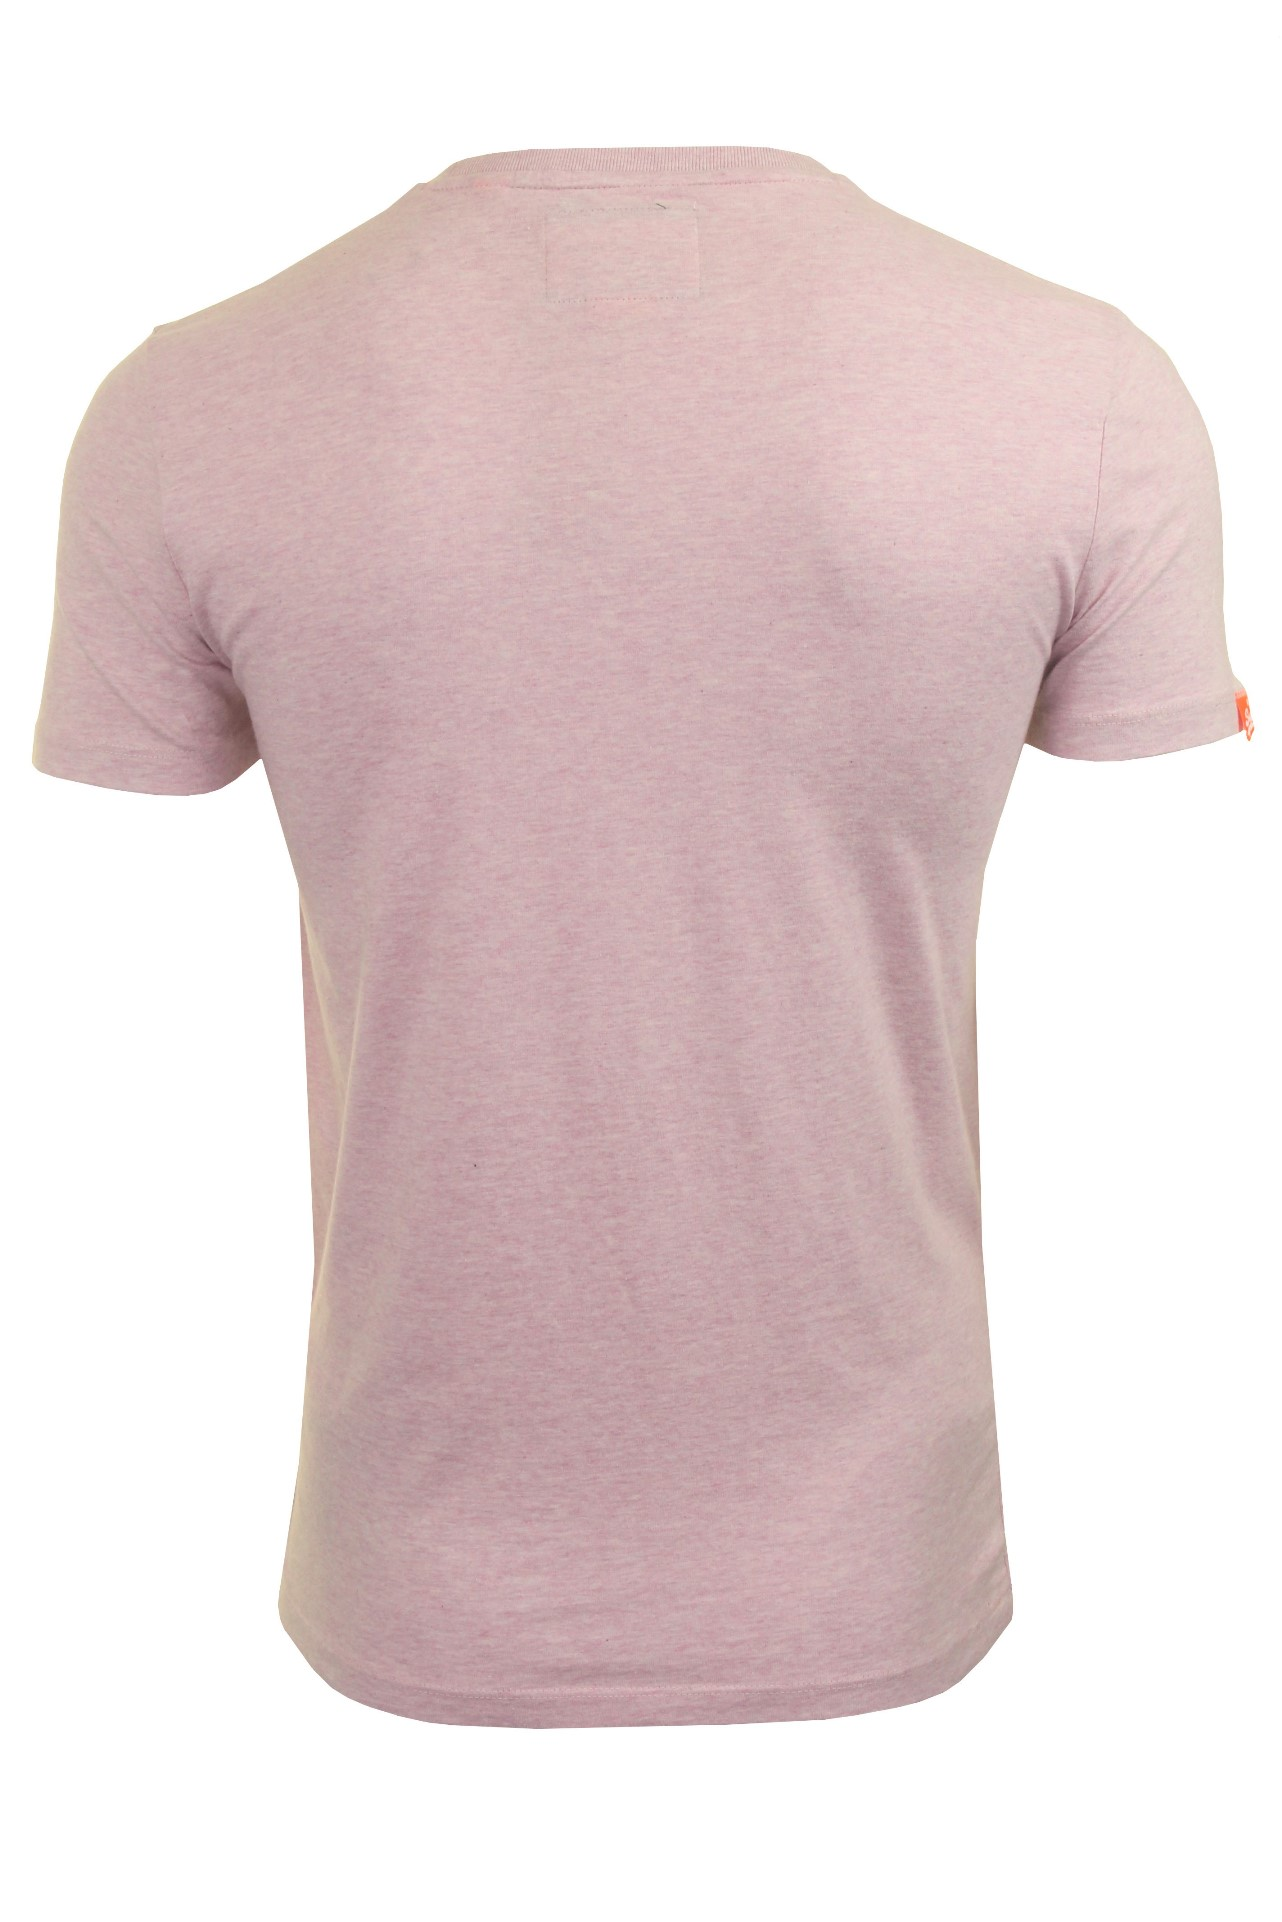 Superdry-Mens-039-Vintage-Embroidery-039-Short-Sleeved-T-Shirt thumbnail 8